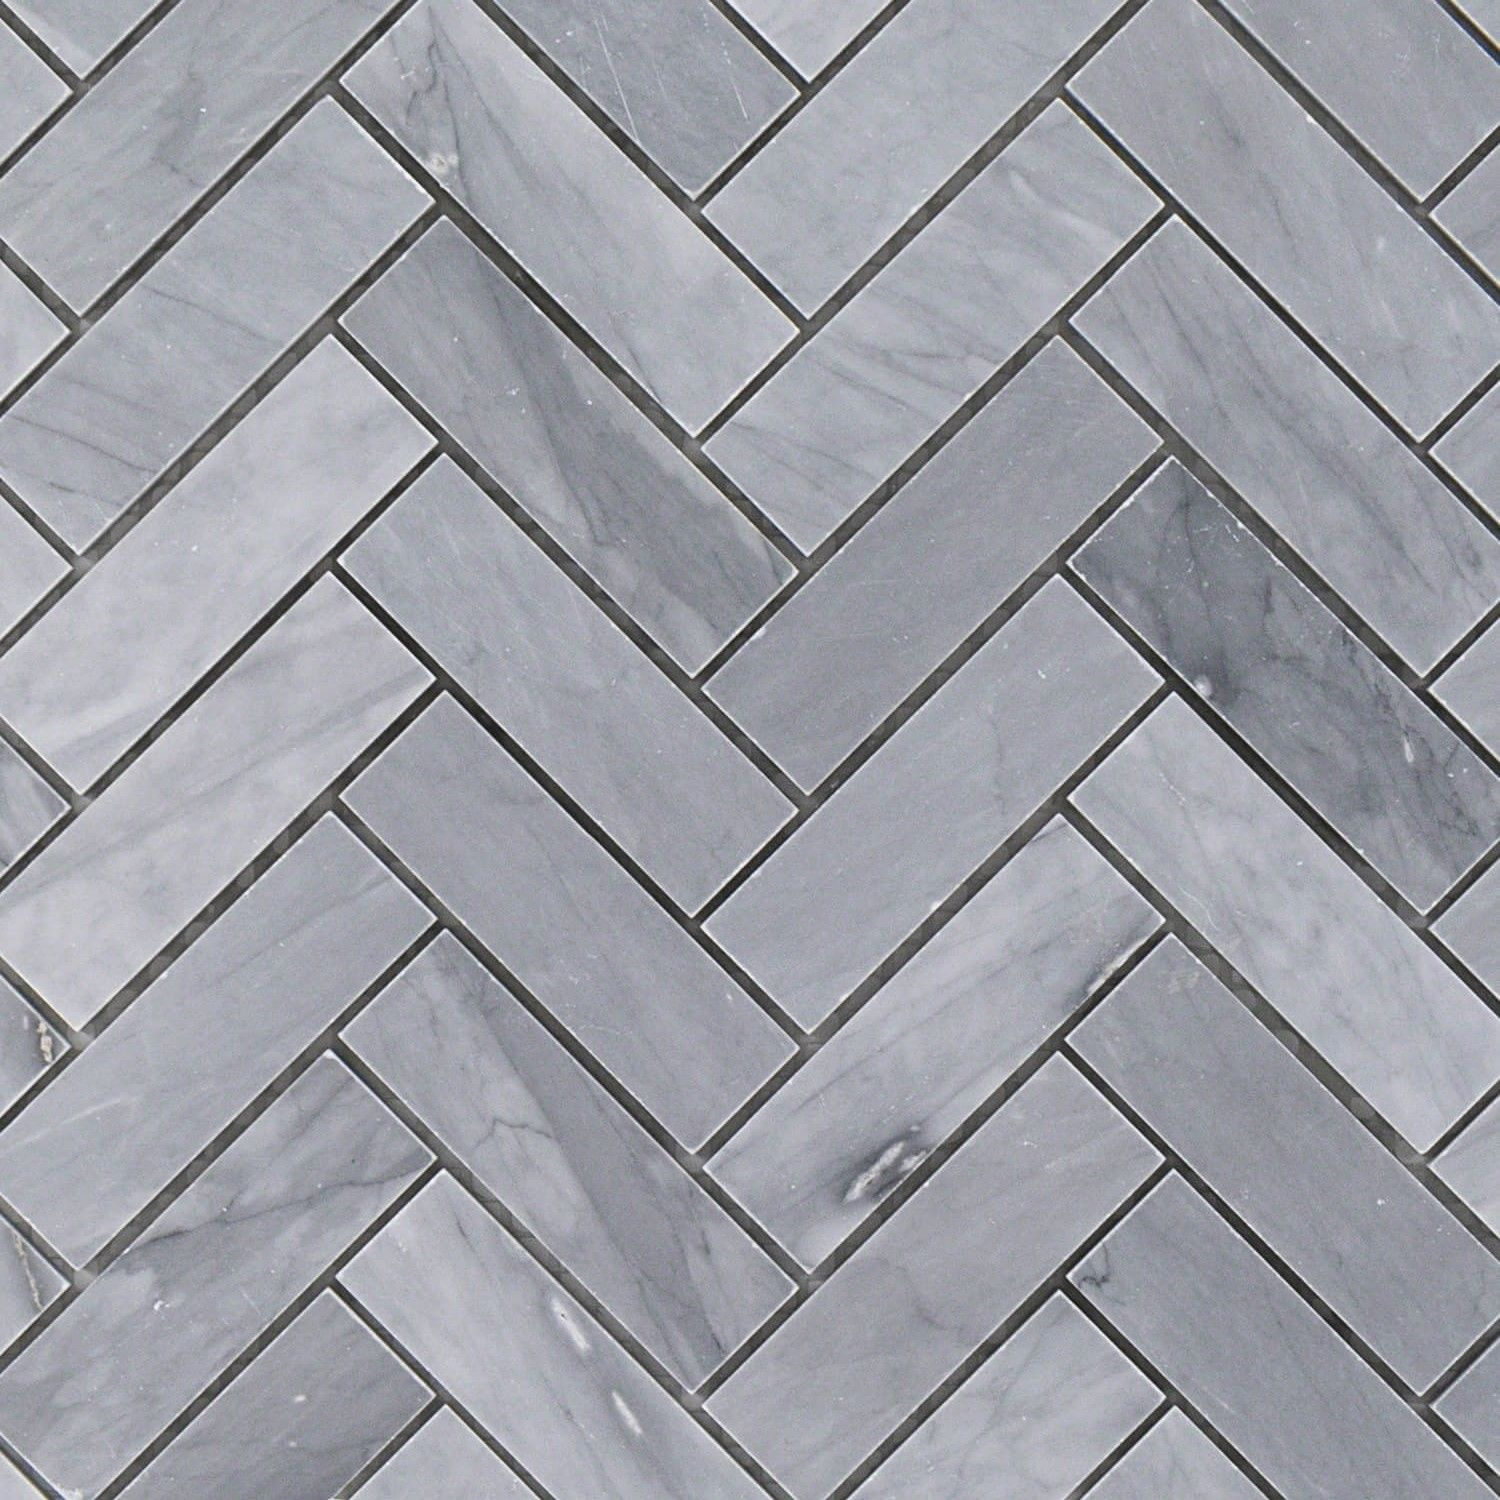 Halley Gray Herringbone Marble 1x3 Tile Herringbone Tile Floors Herringbone Tile Marble Herringbone Tile